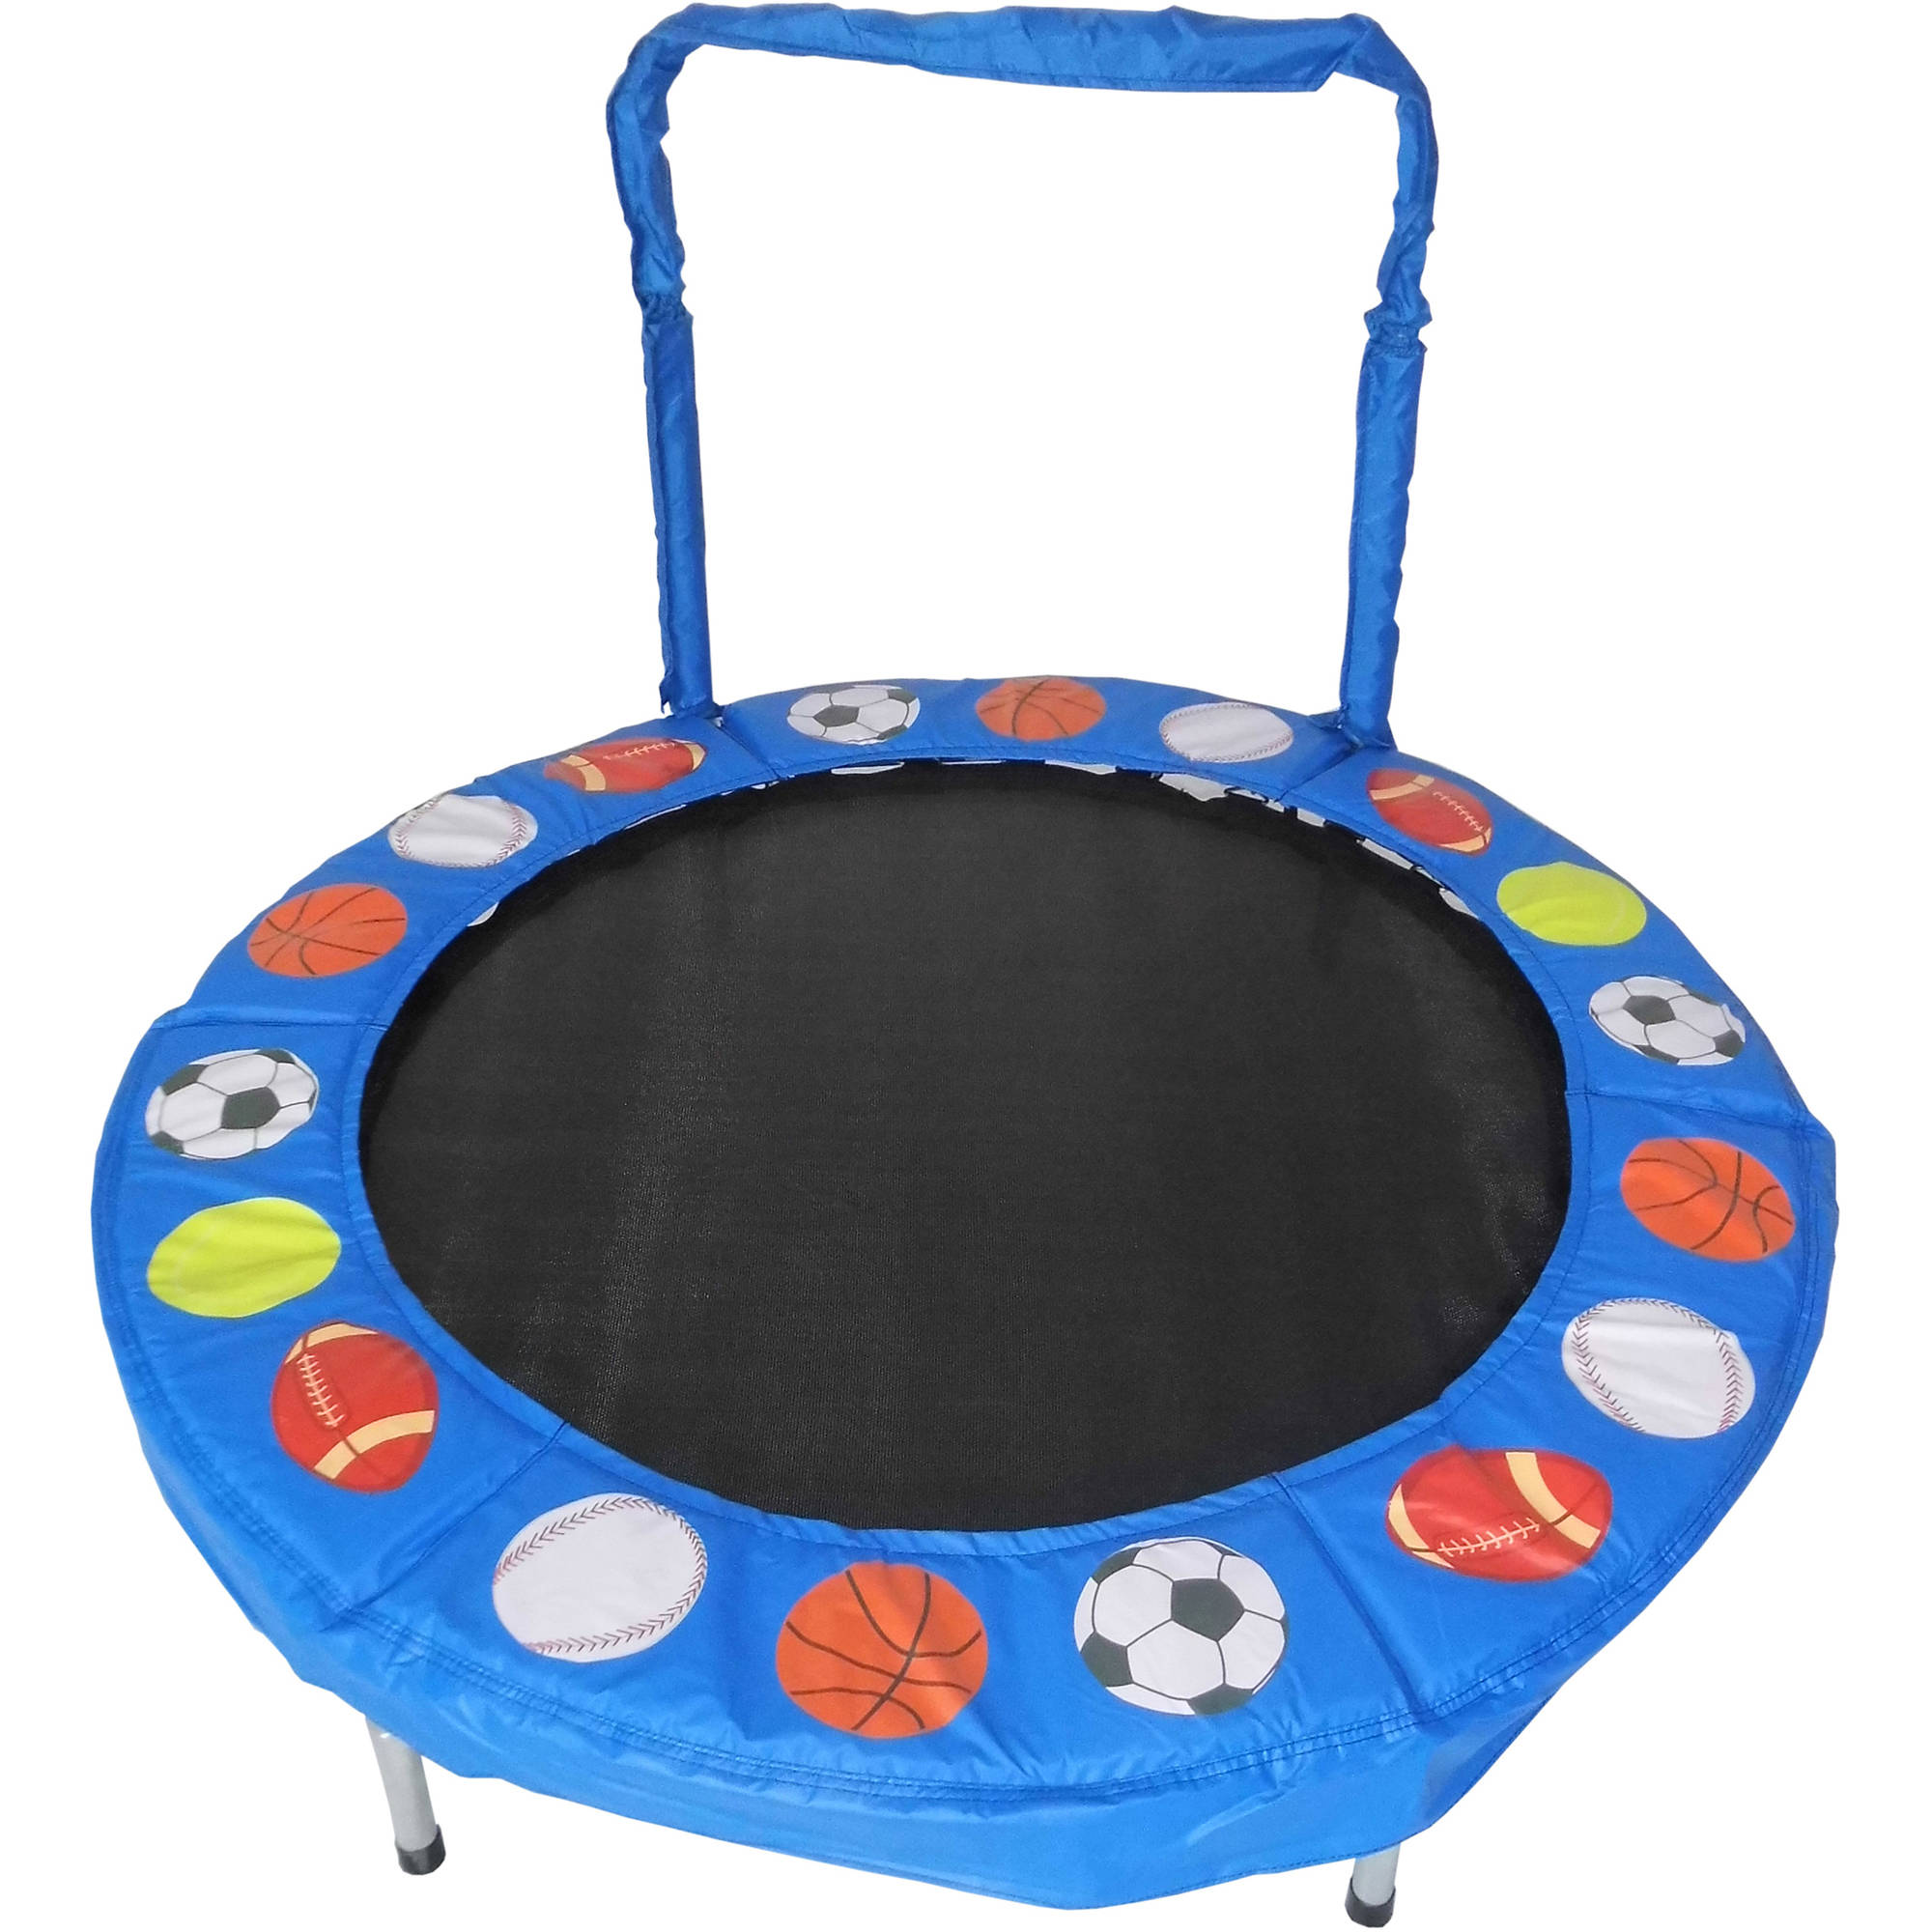 Jumpking Trampoline 4-Foot Bouncer for Kids, Orange Camouflage